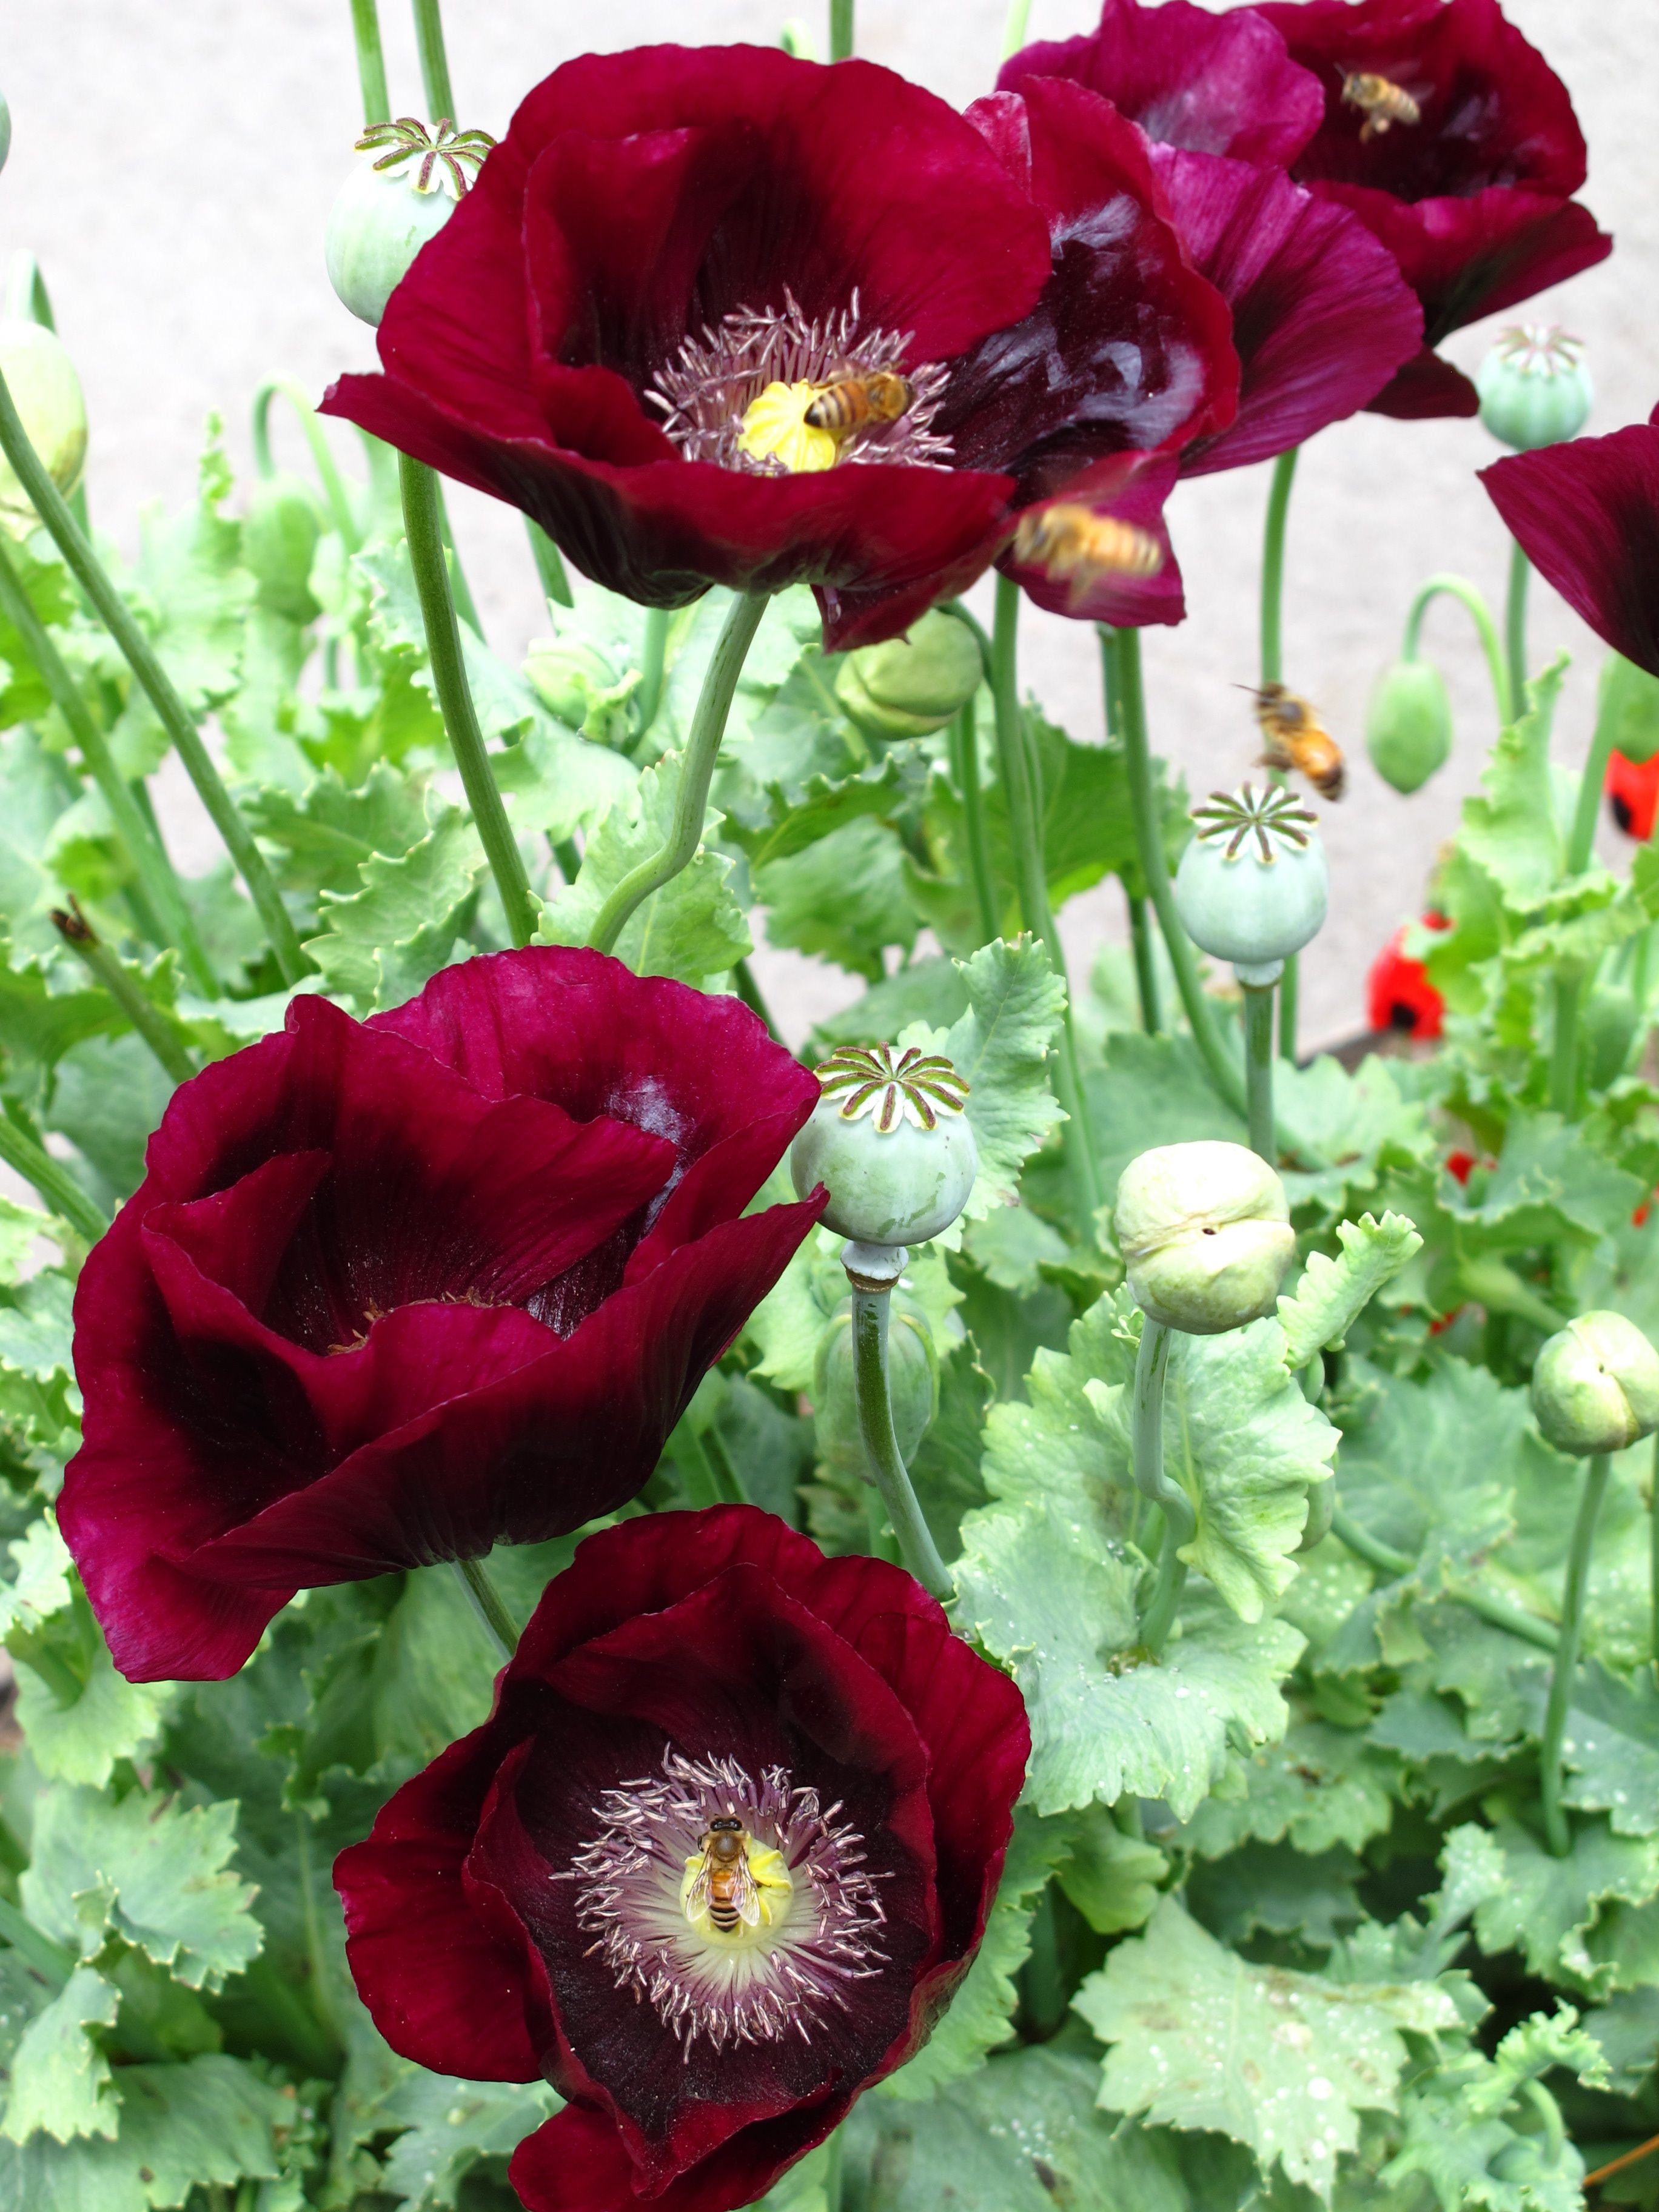 Poppies my favorite flower mine too going to get a tattoo of one poppies my favorite flower mine too going to get a tattoo of one someday mightylinksfo